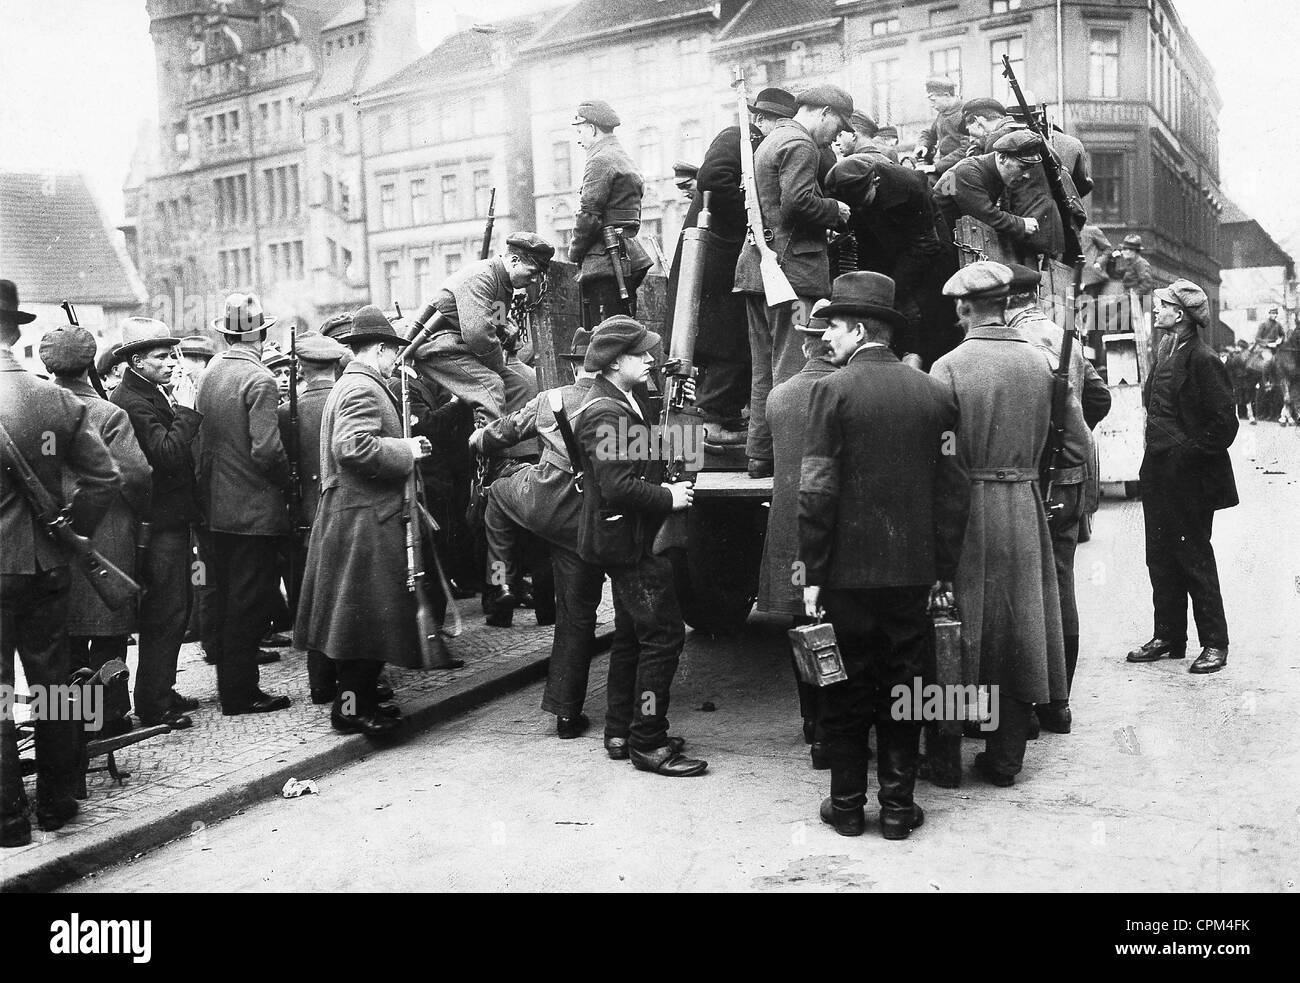 Members of the Red Army during the communist uprising in the Ruhr region, 1920 - Stock Image